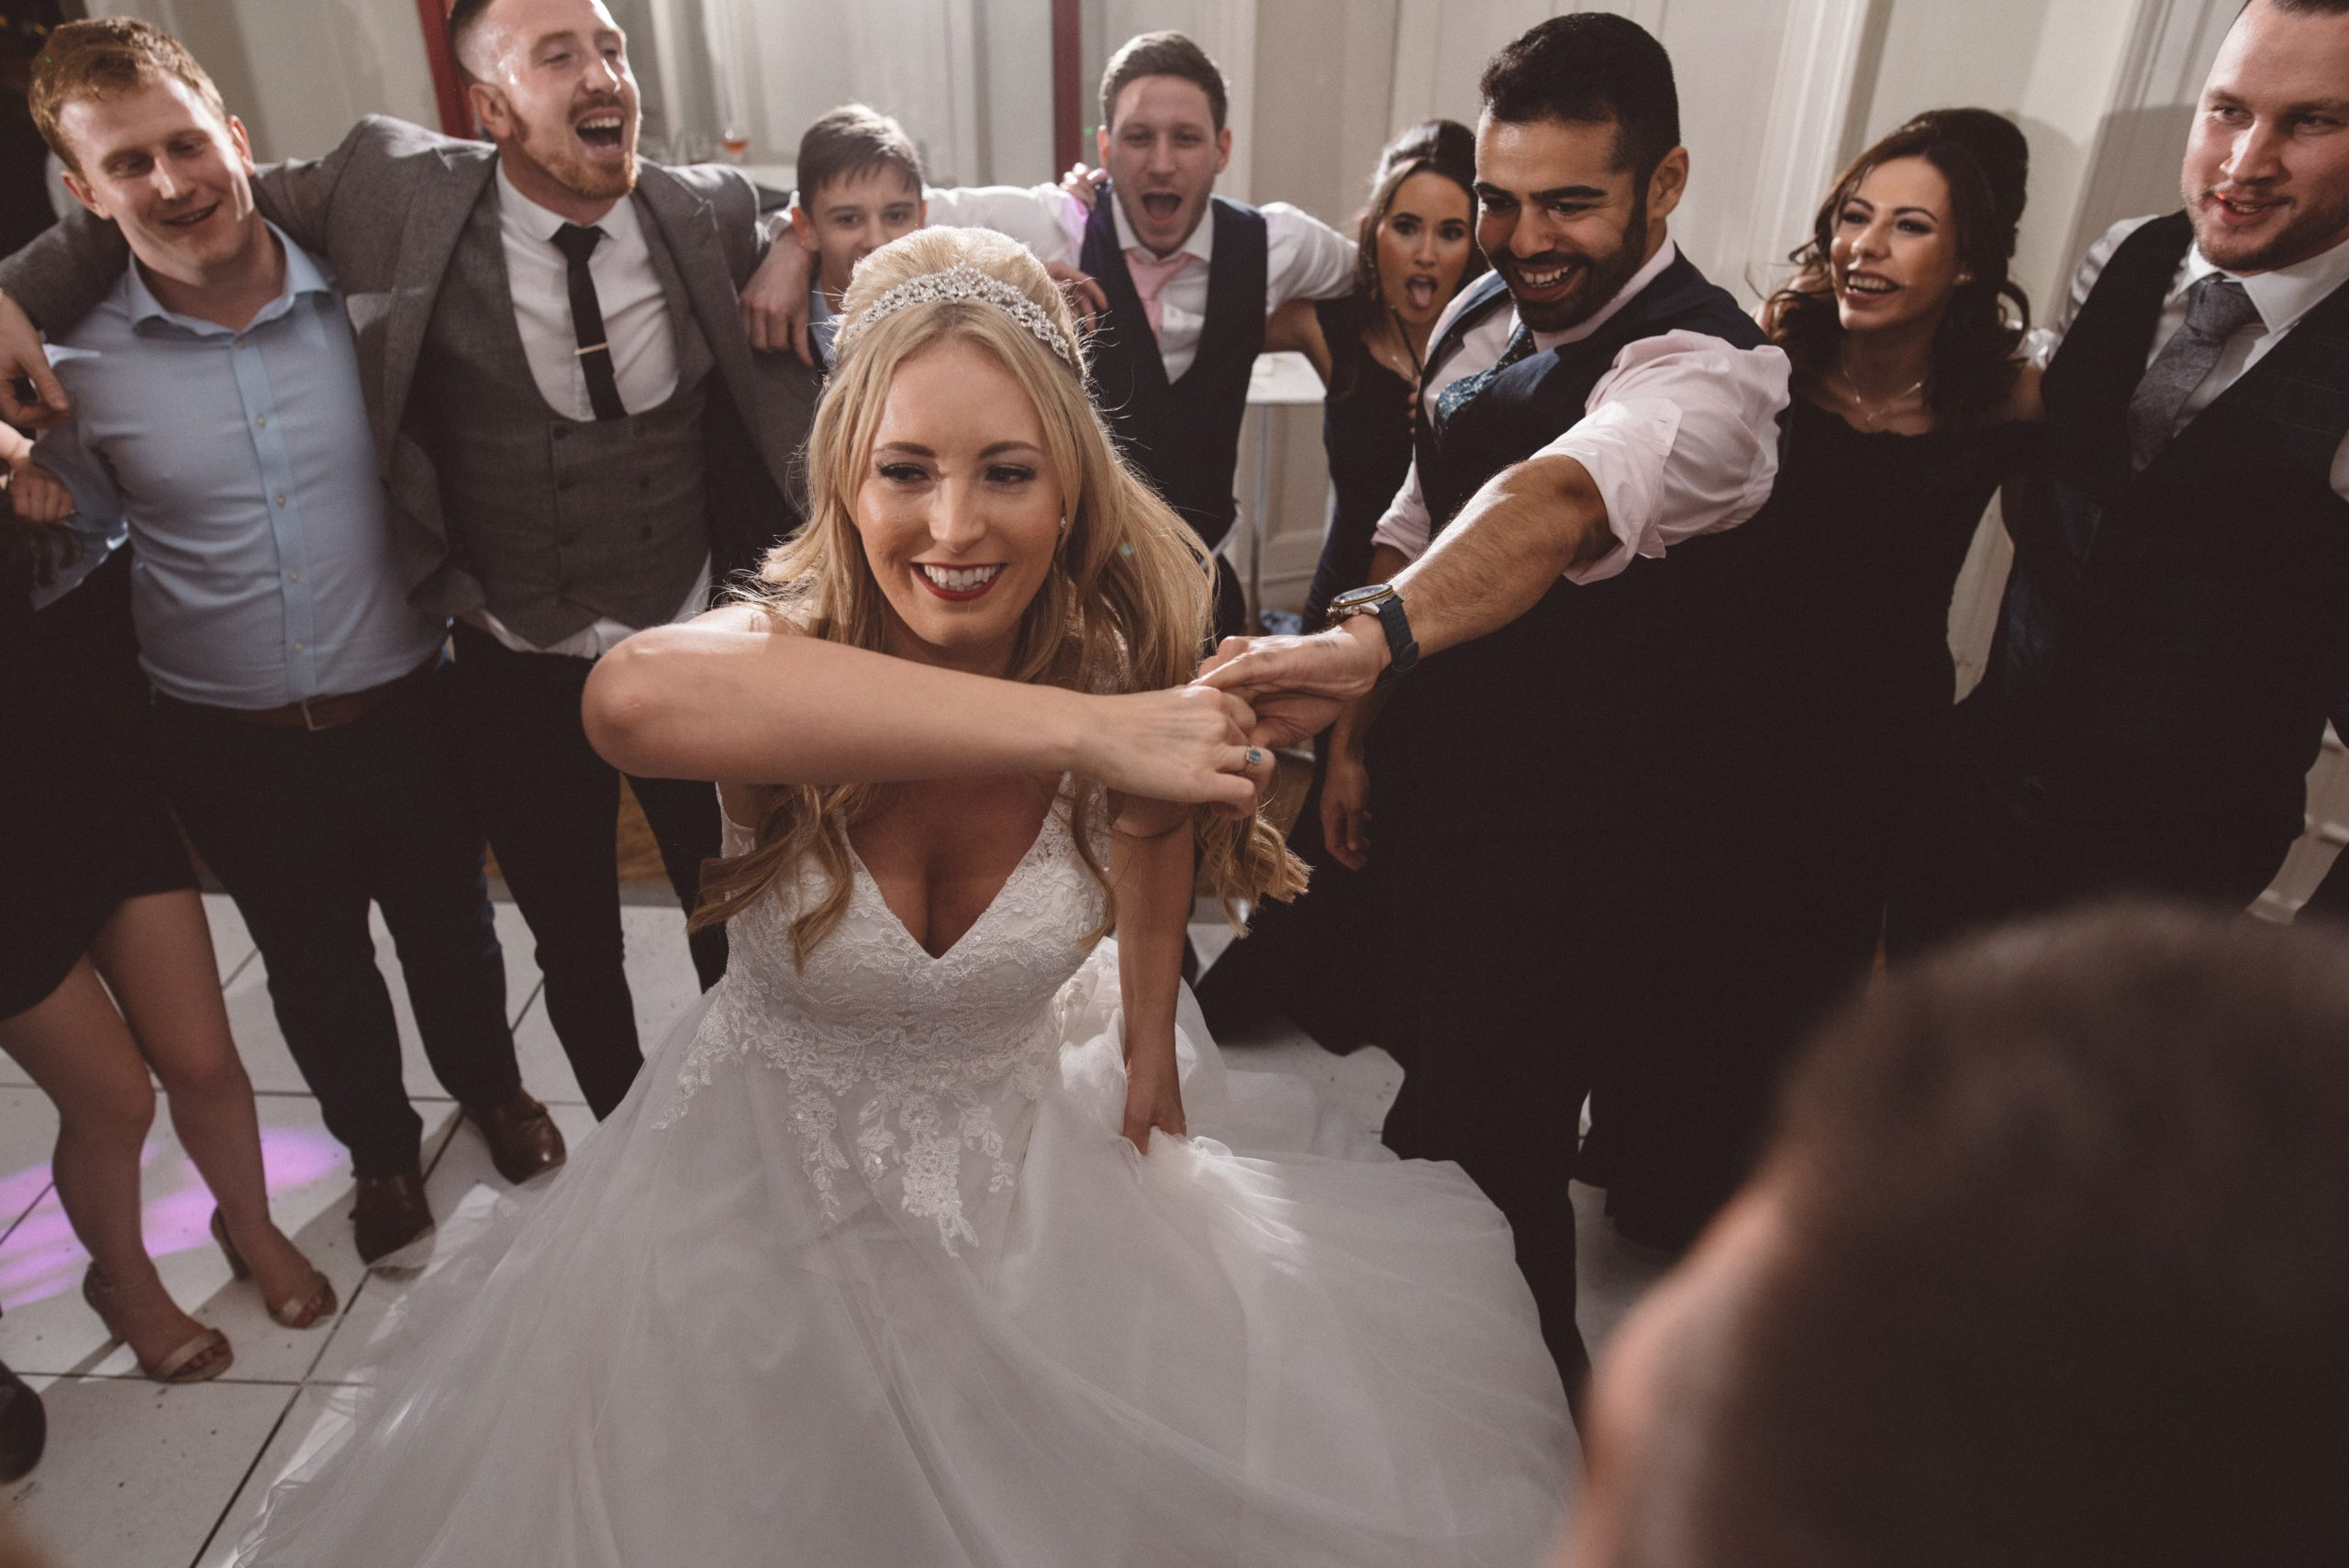 Bride dancing with her friends at an Essex wedding